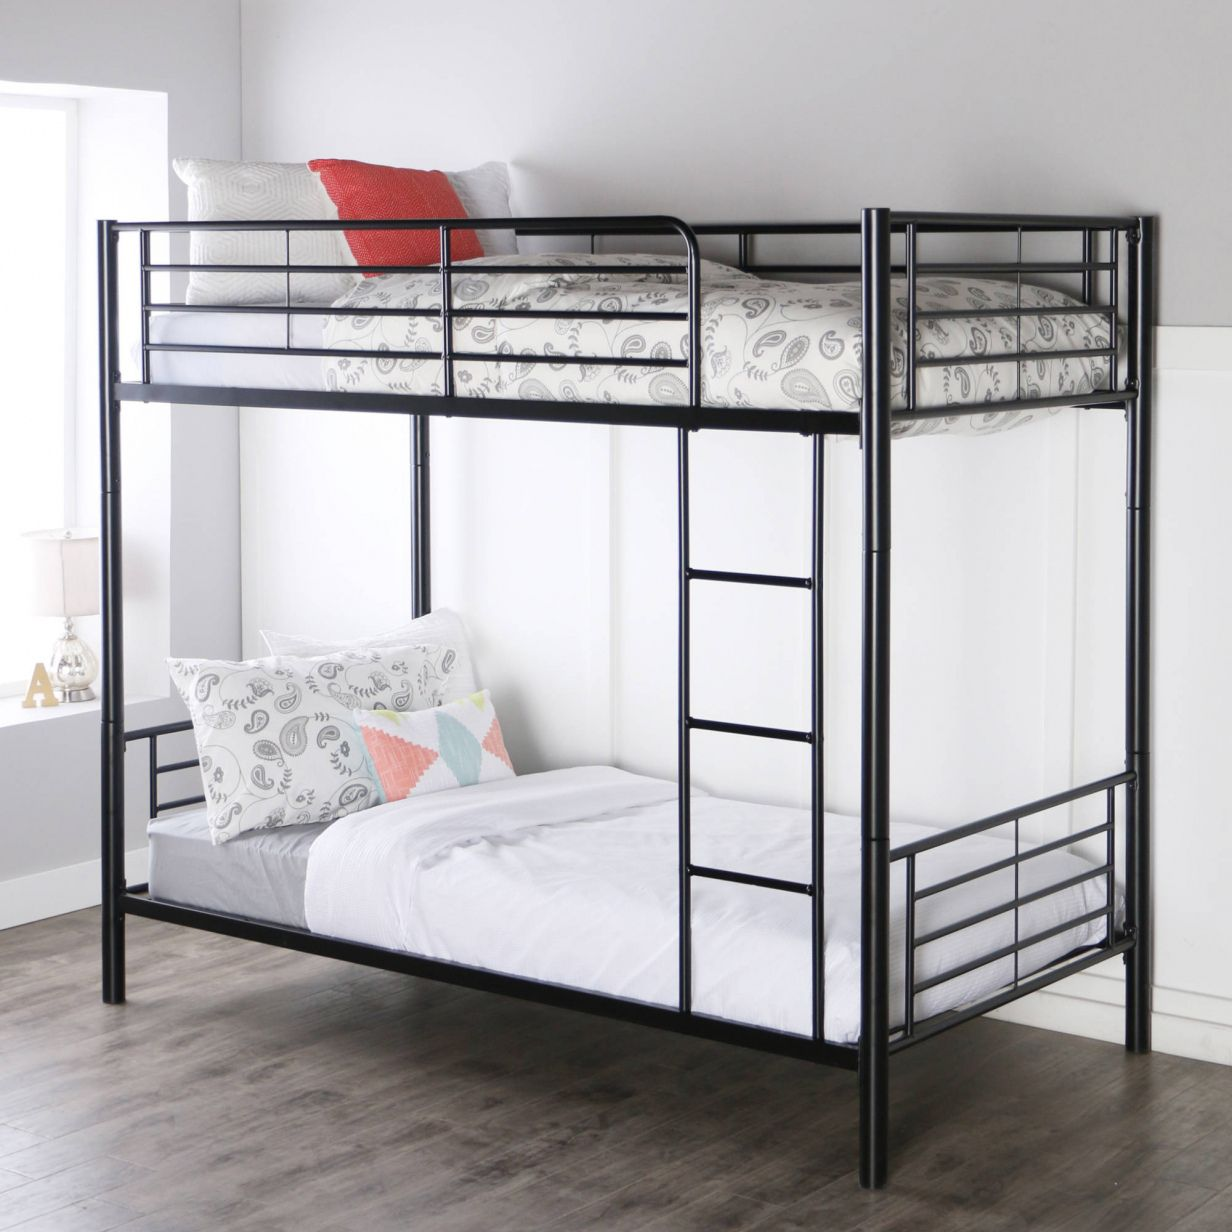 Lovely Metal Bunk Beds for Sale Check more at http://dust-war.com ...